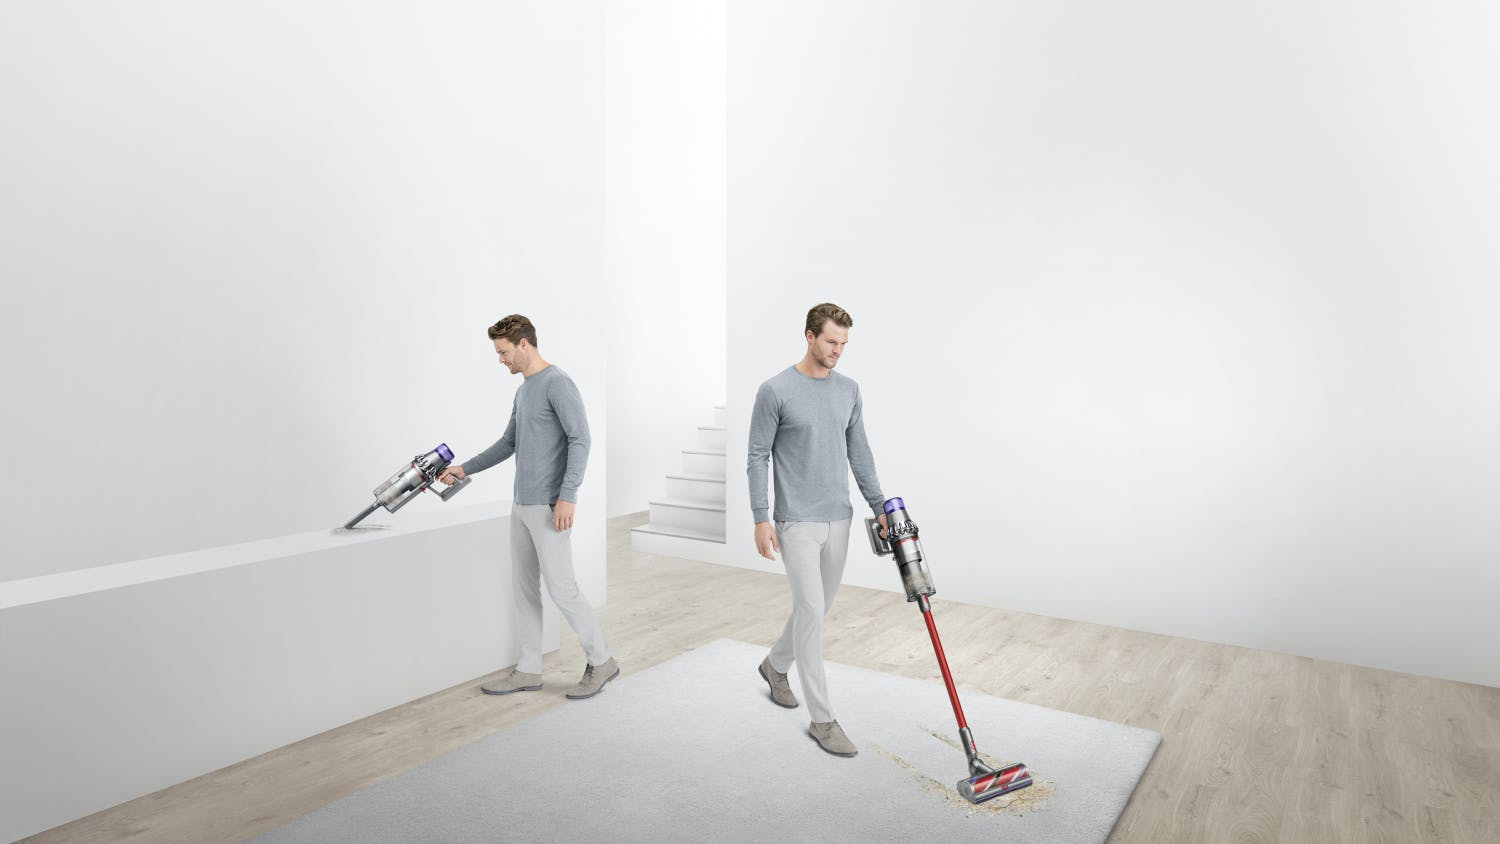 Dyson Outsize Total Clean Handstick Vacuum Cleaner